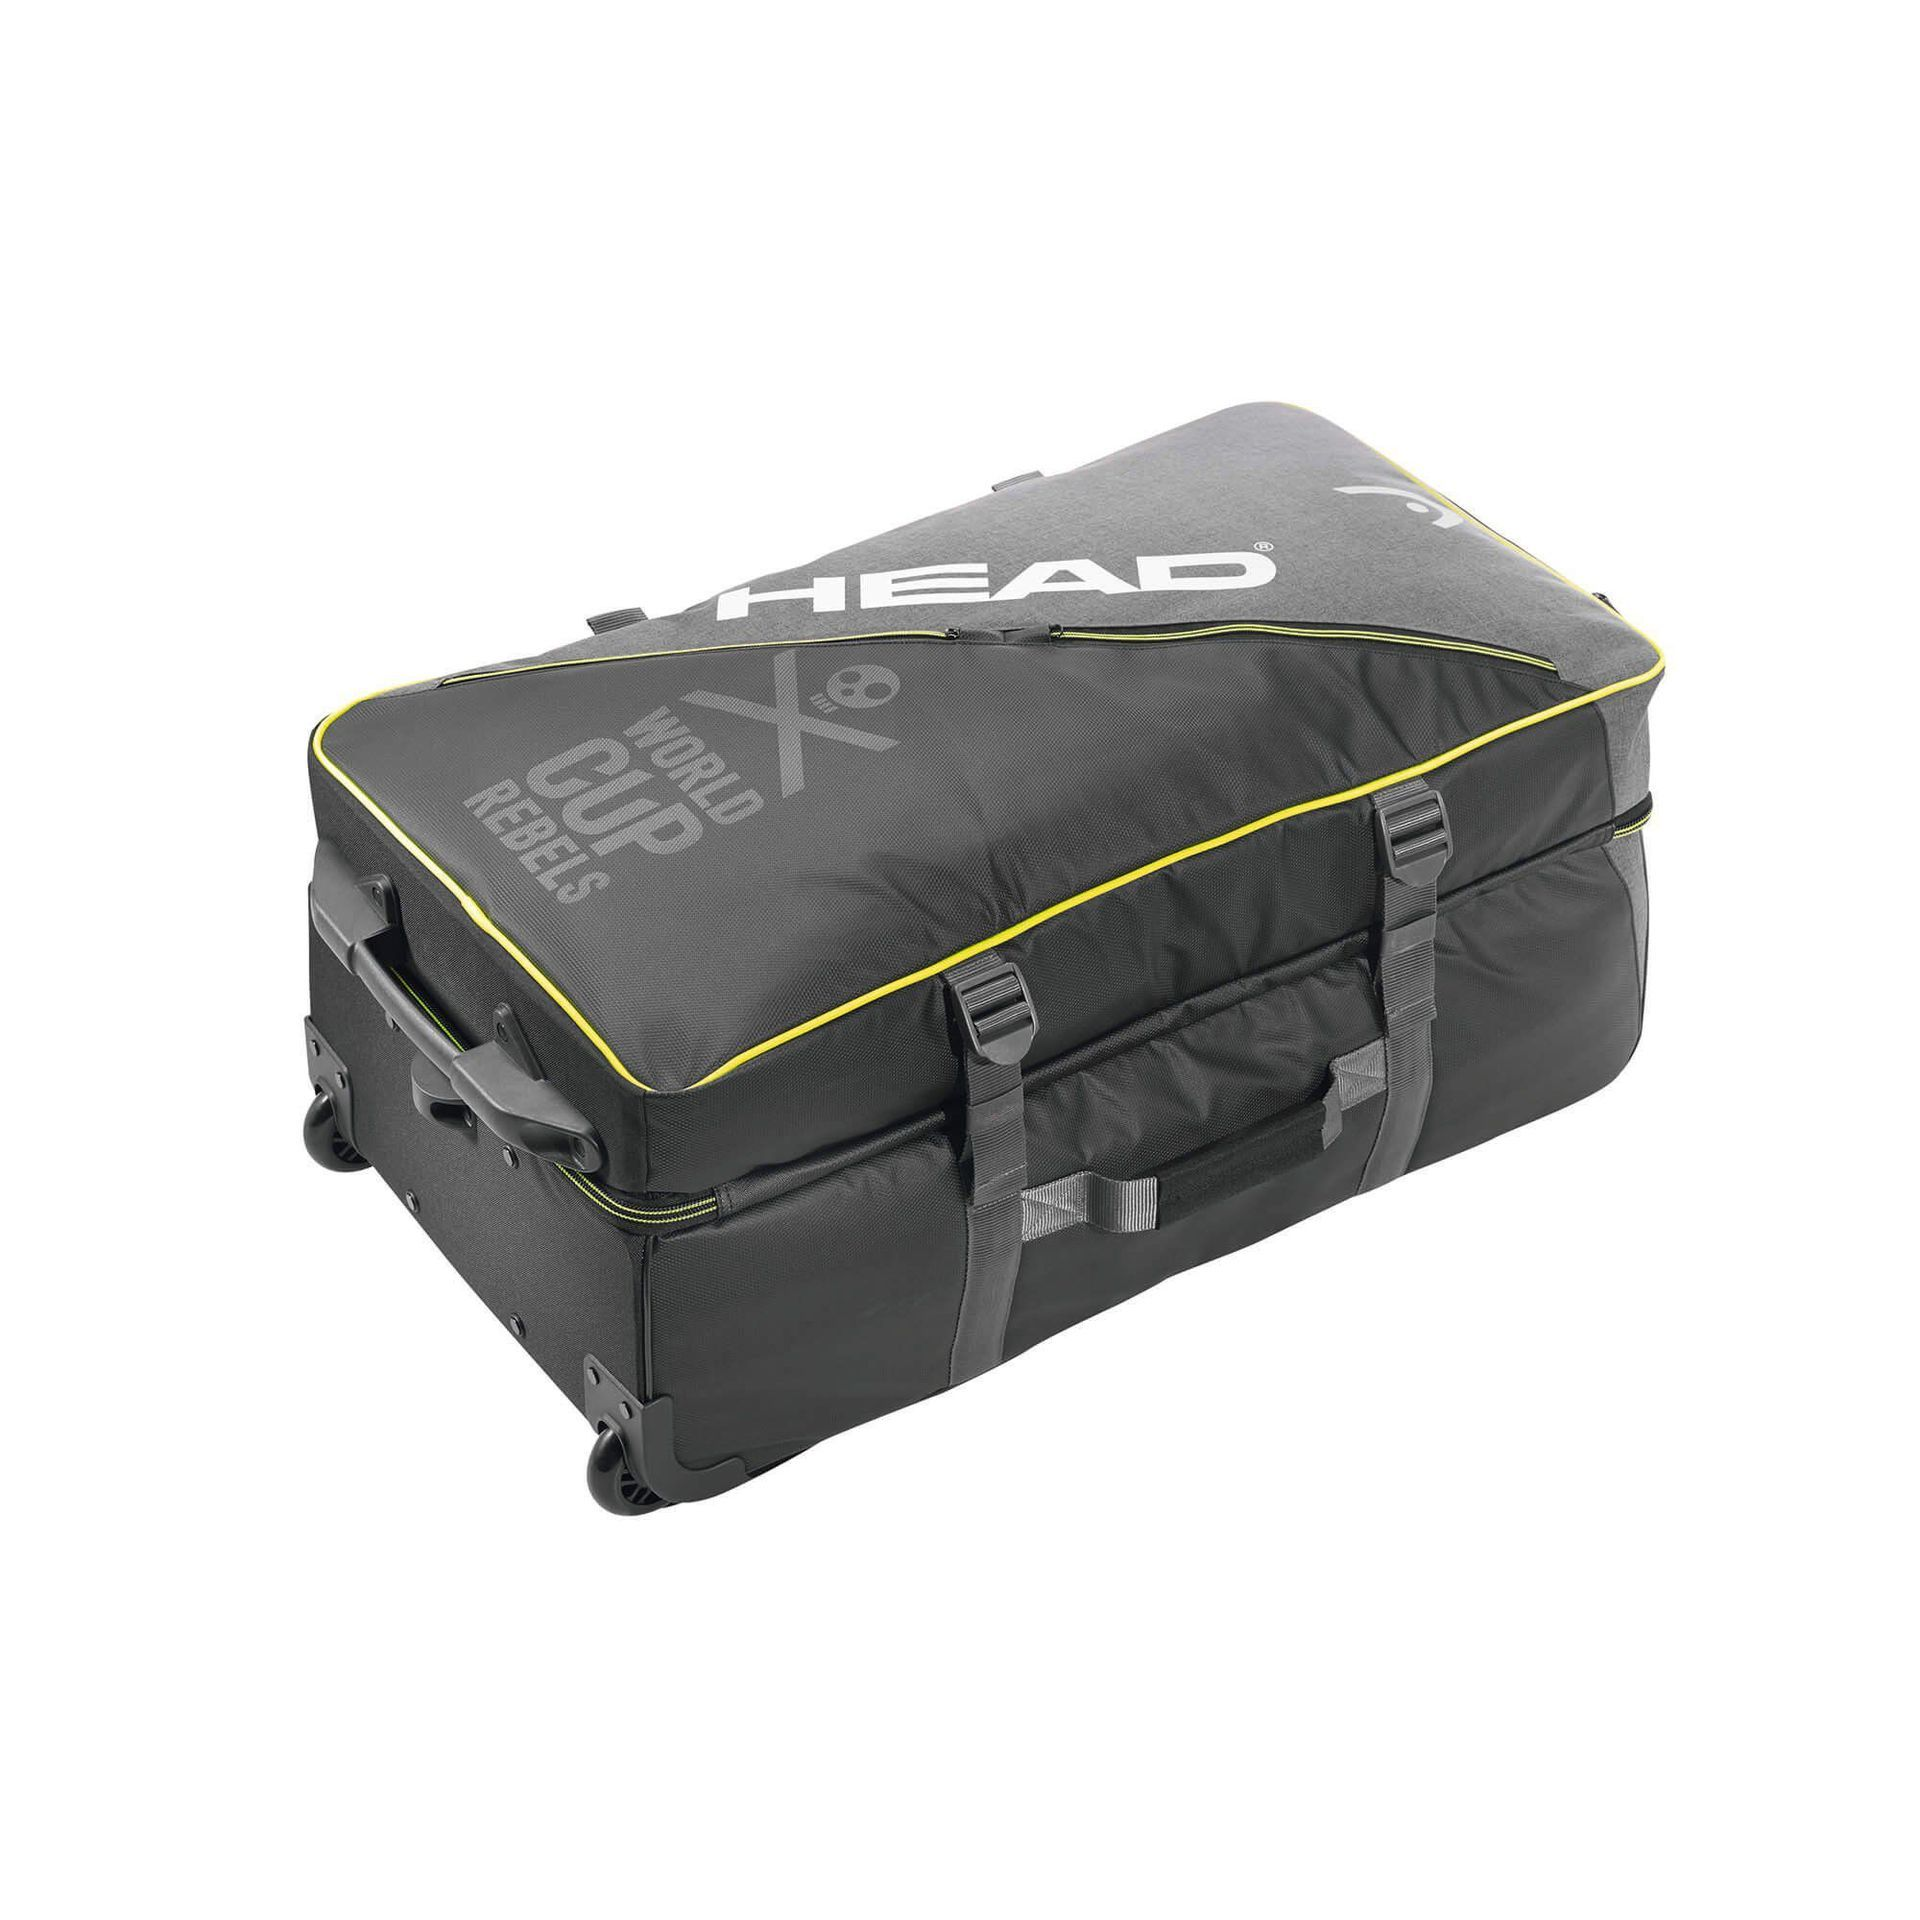 TORBA PODRÓŻNA HEAD REBELS TRAVELBAG 383007 1